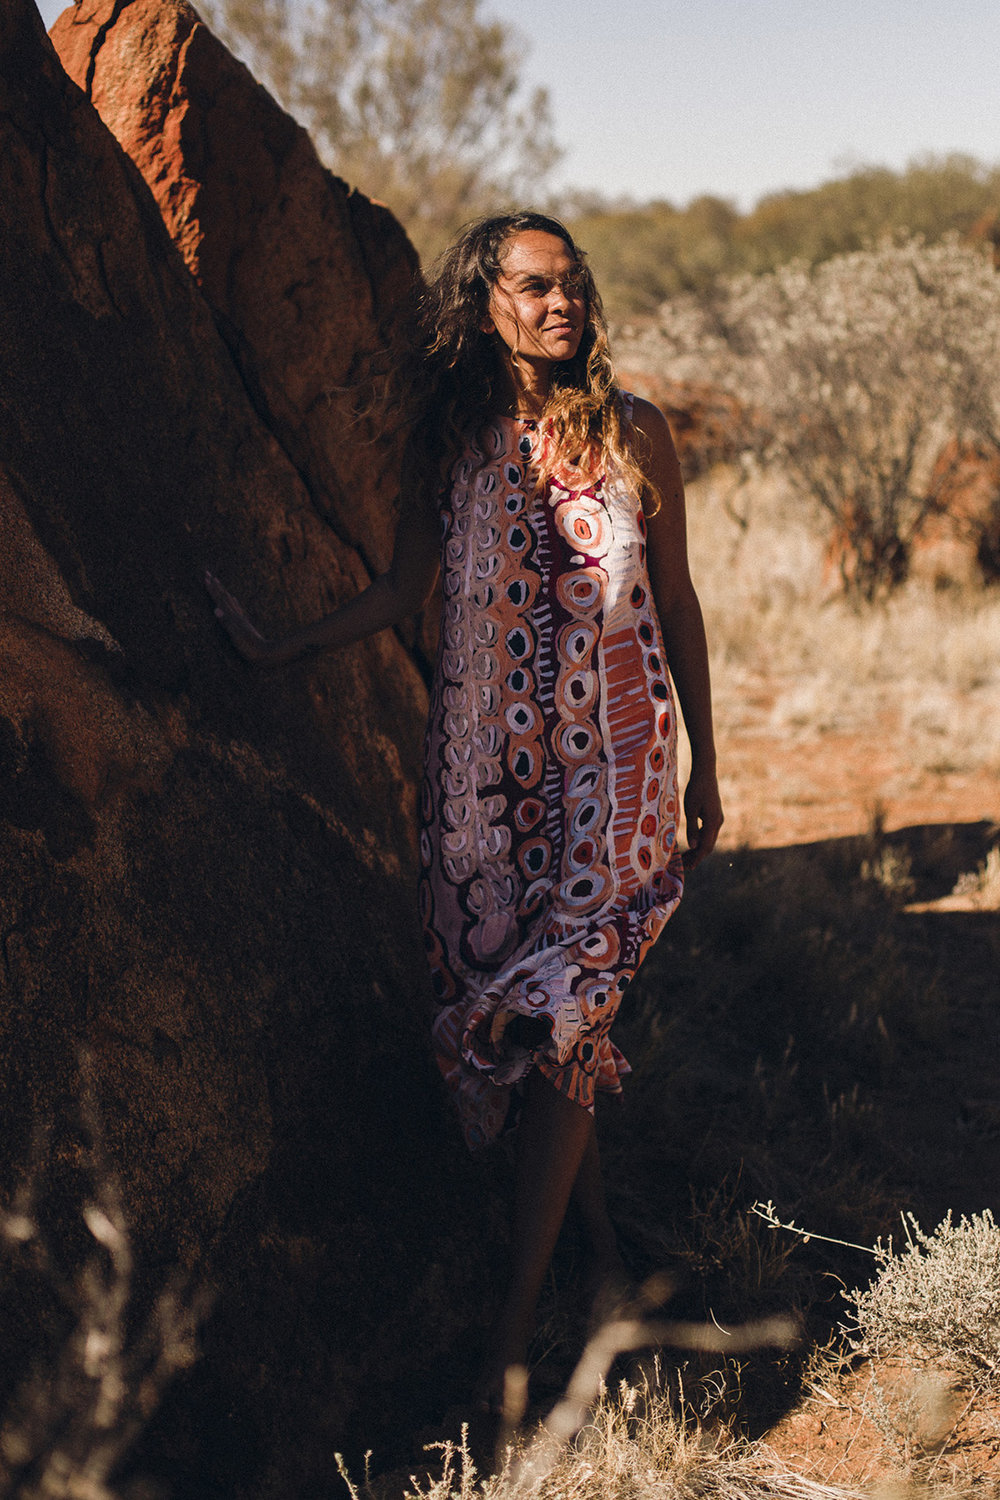 Artwork featured throughout this collection is deeply connected to Walpiri country and the artists are paid for each garment featuring their work, above the standards set out by the Indigenous Arts Law. -